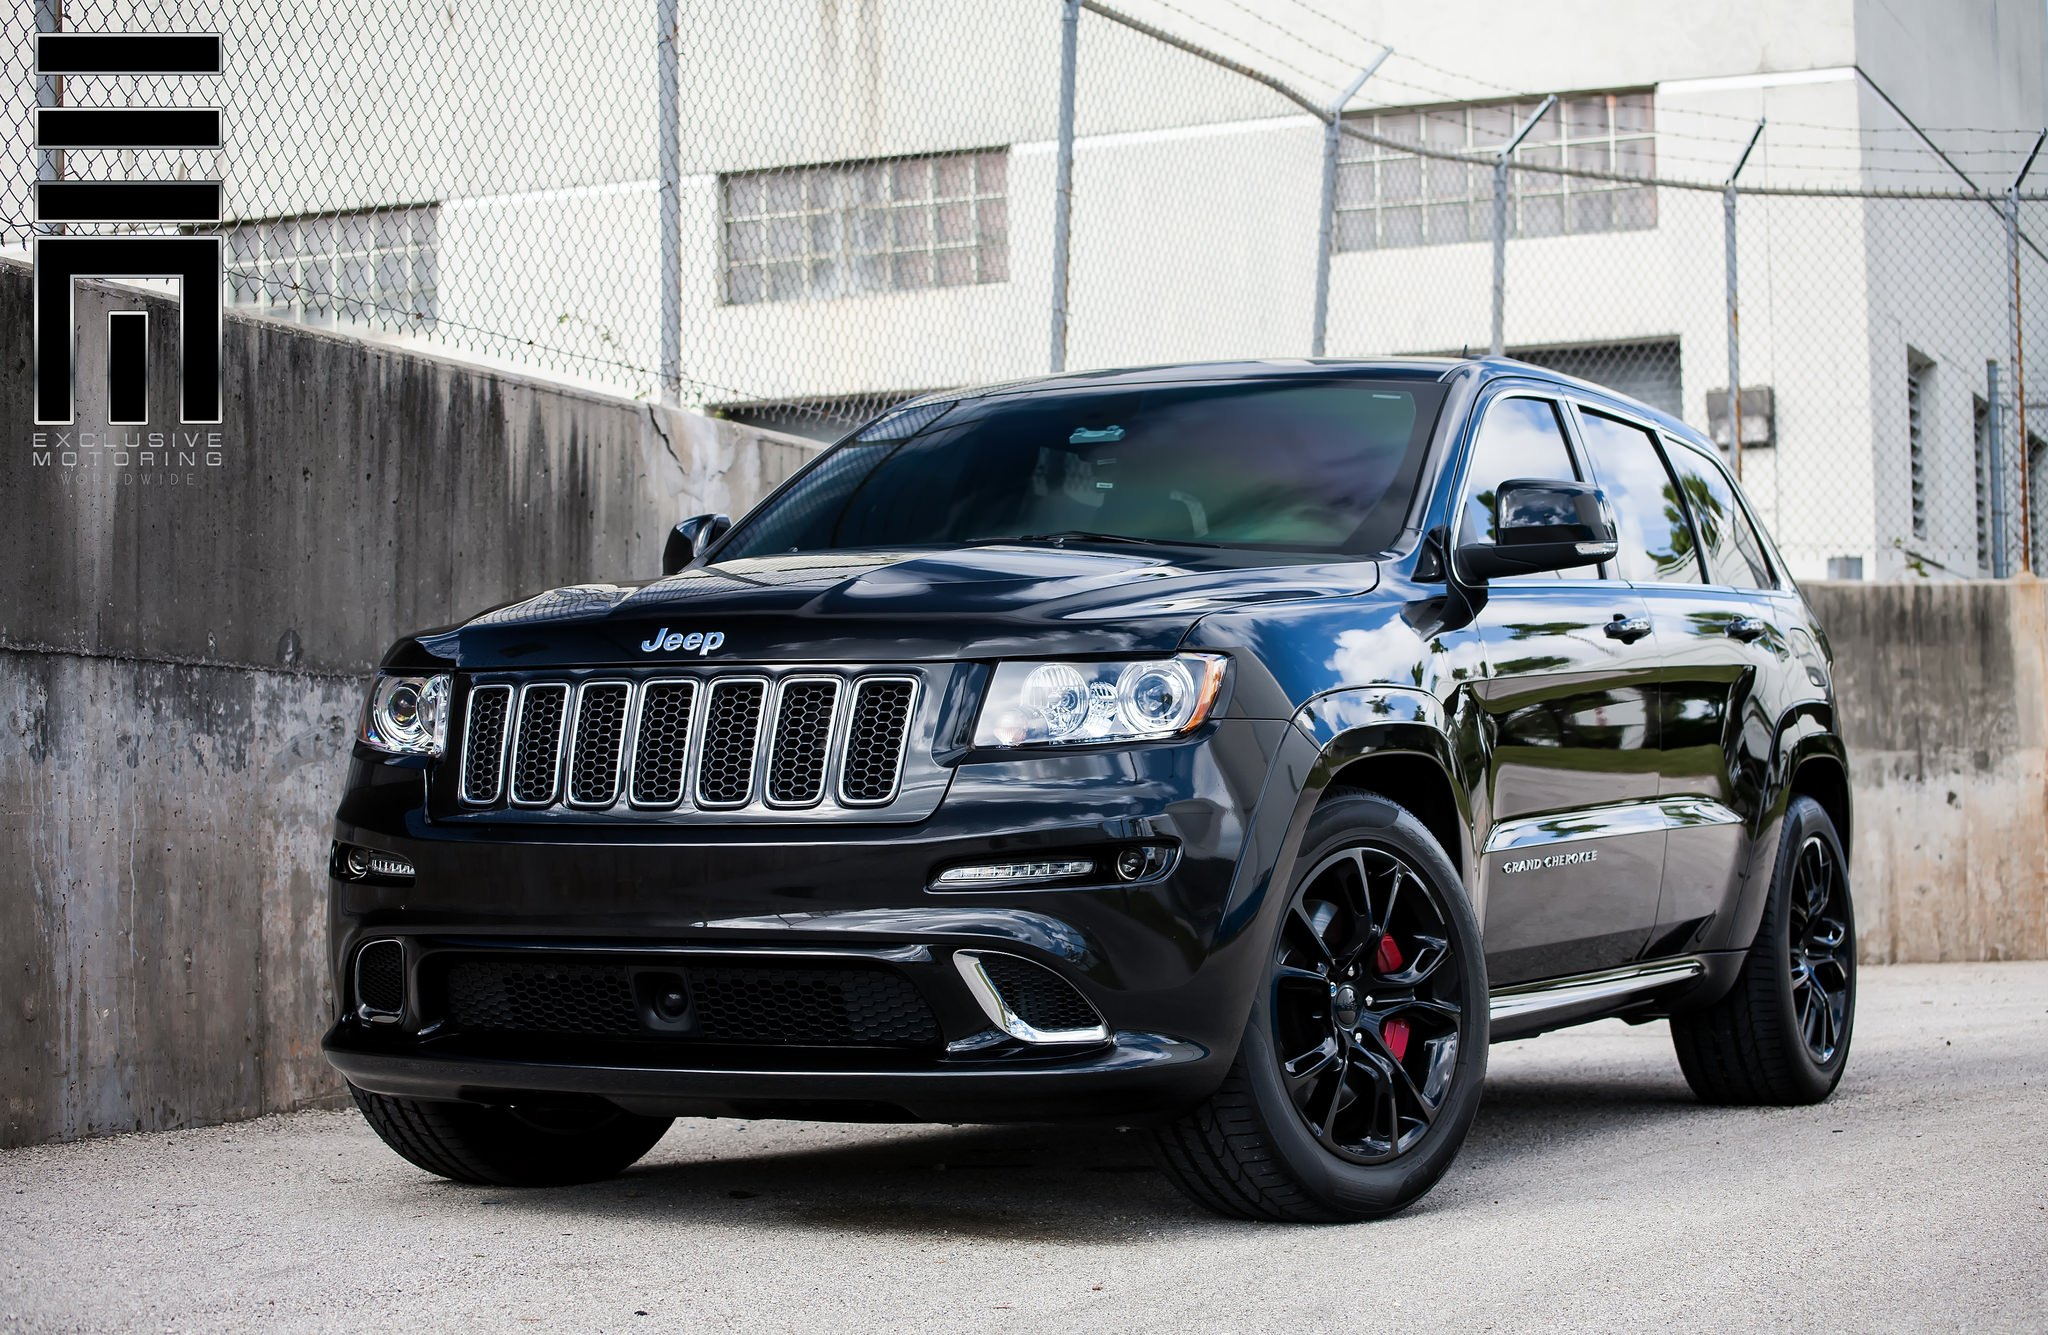 Srt 8 Grand Cherokee By Exclusive Motoring Carid Com Gallery